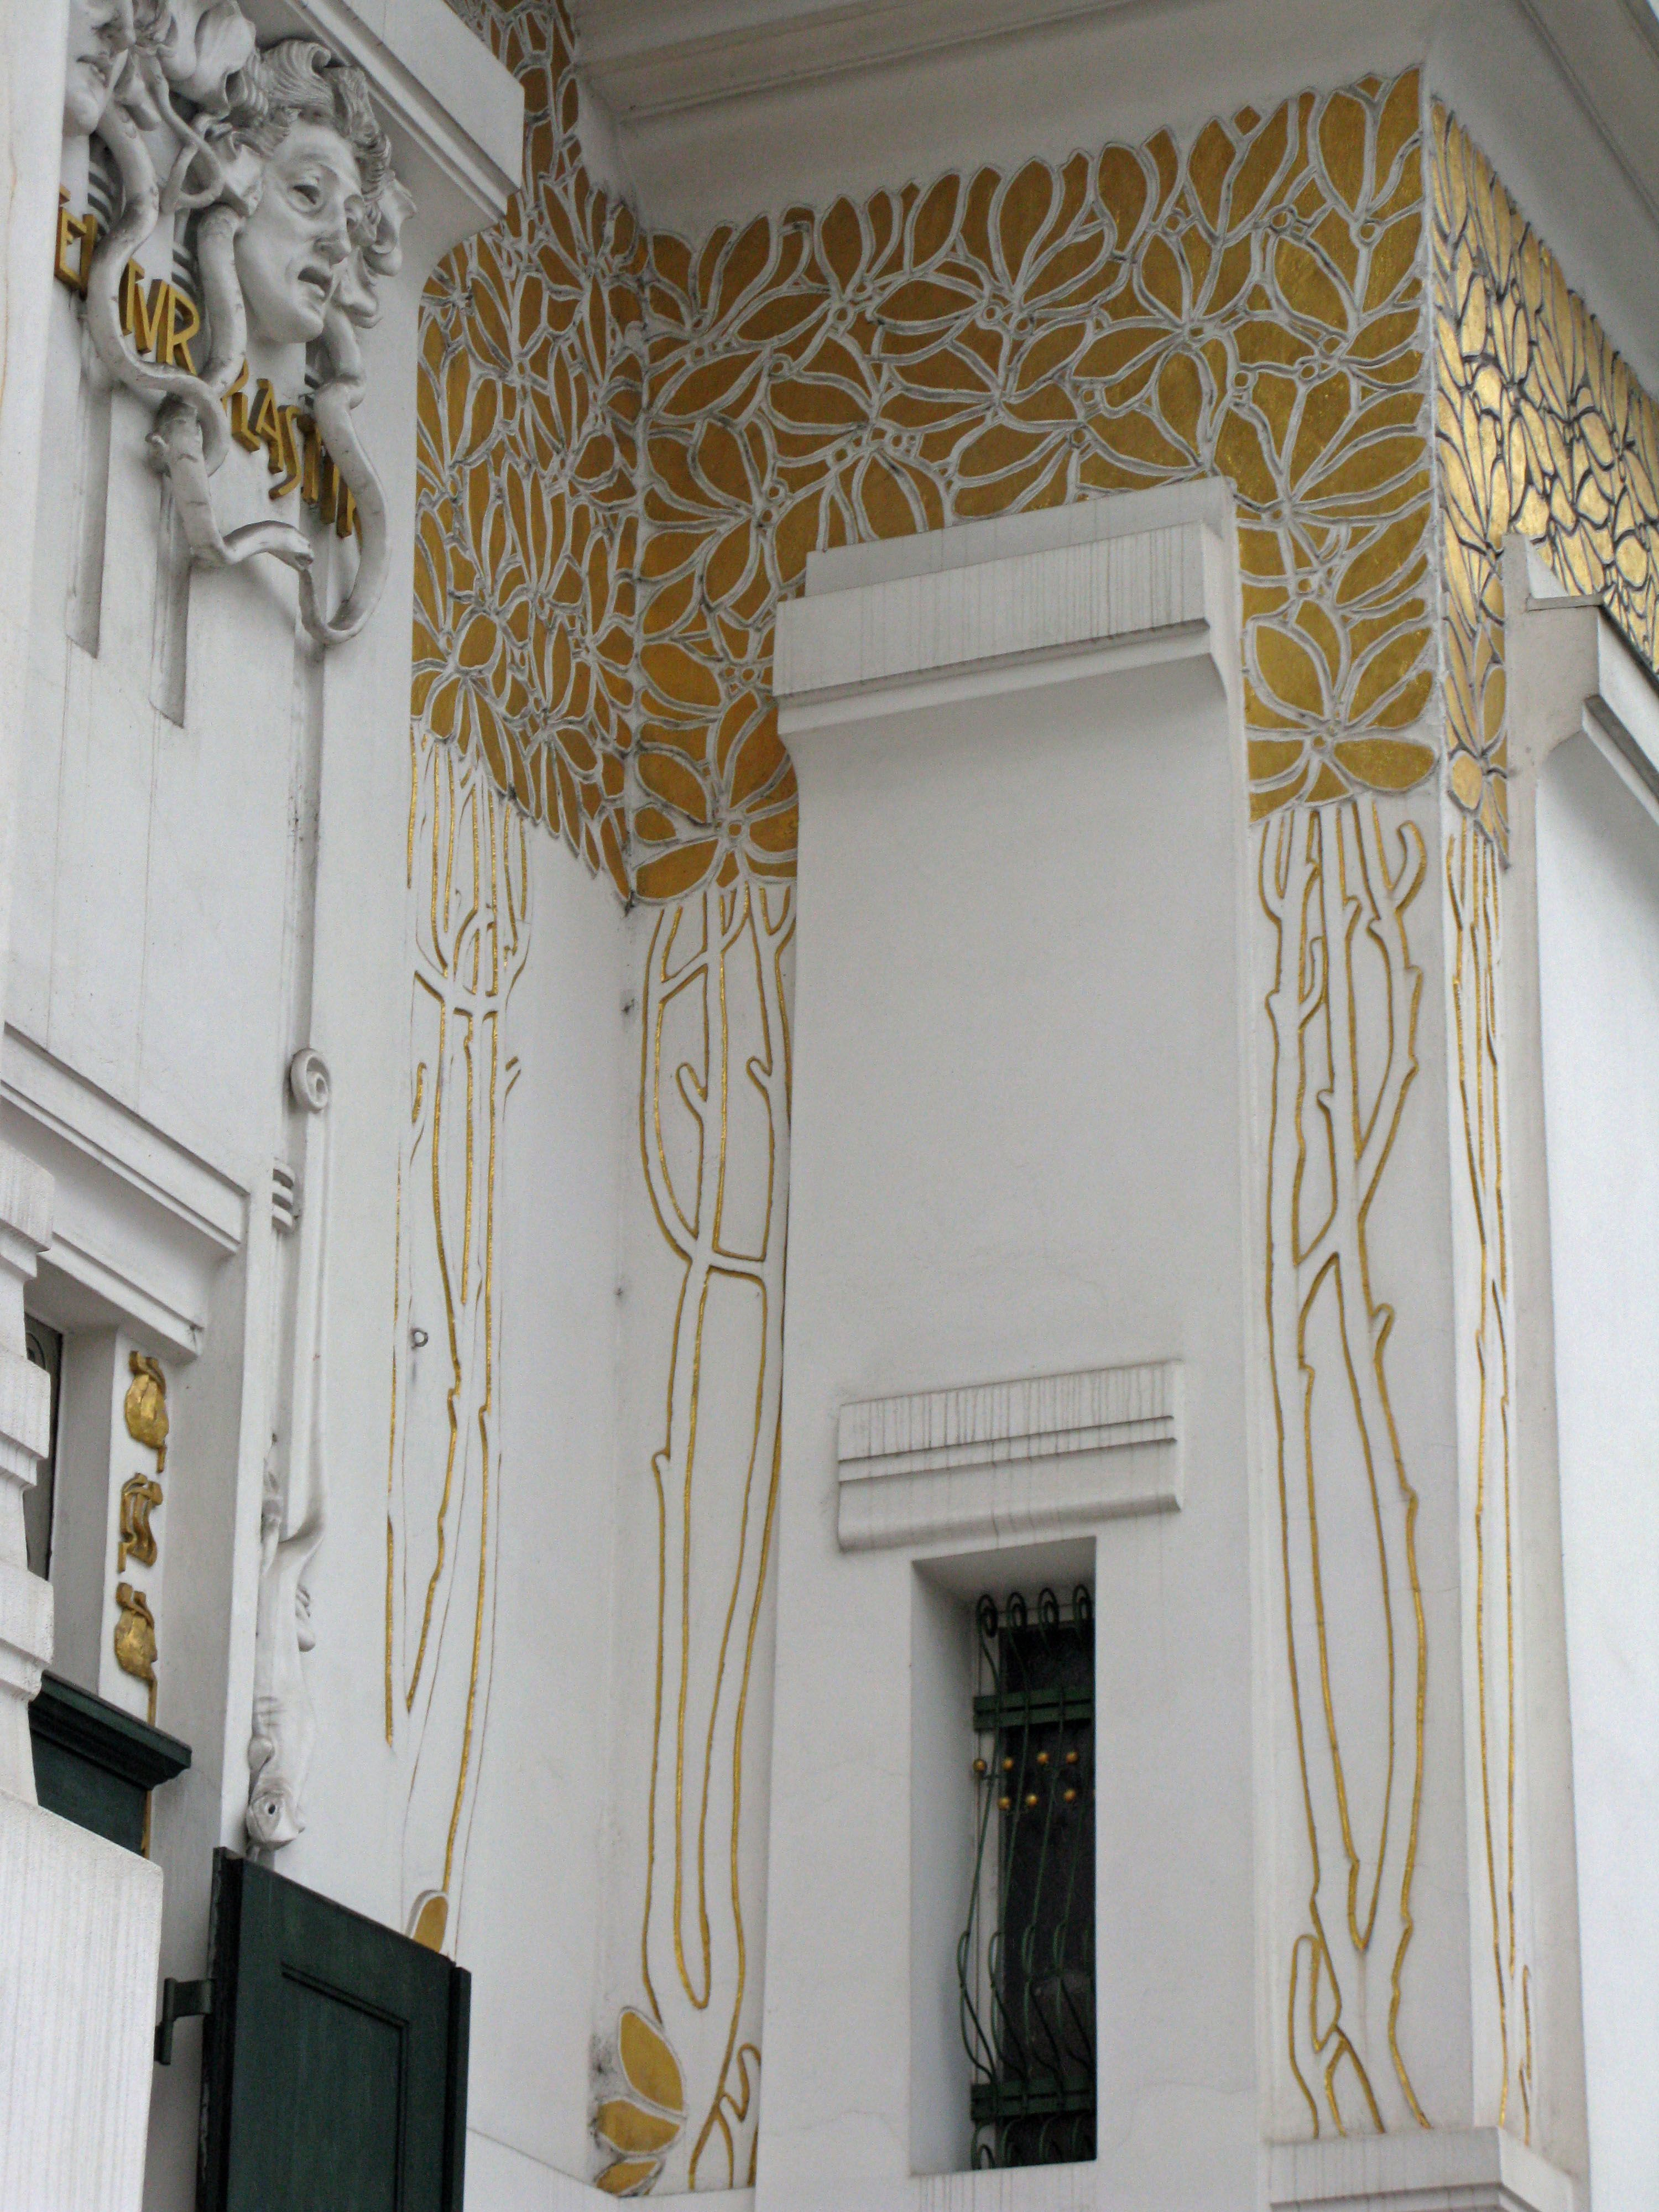 Detail of surface decoration by the main entrance vienna secession building built 1896 art - Wandgestaltung jugendstil ...